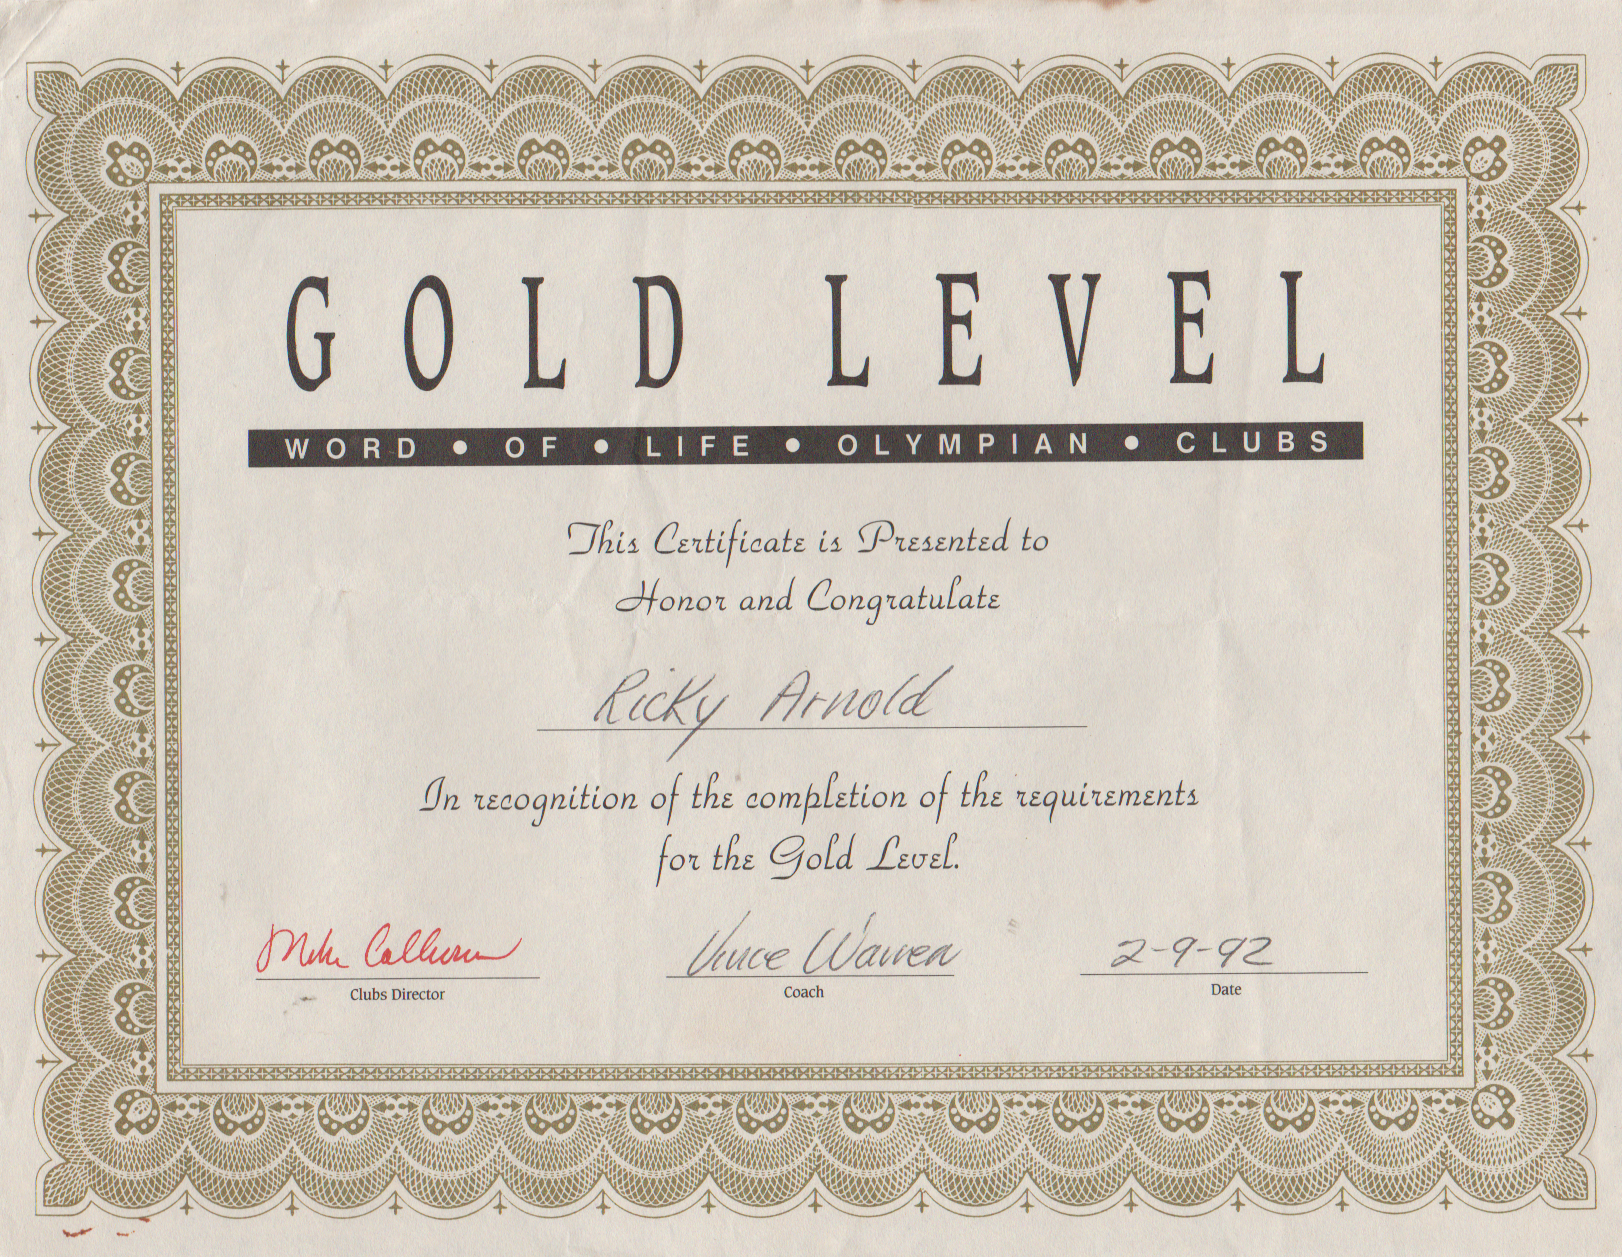 1992-02-09 - Sunday - Olympian Clubs, Gold Level, Coach Vince Warren, Ricky Arnold ok.png